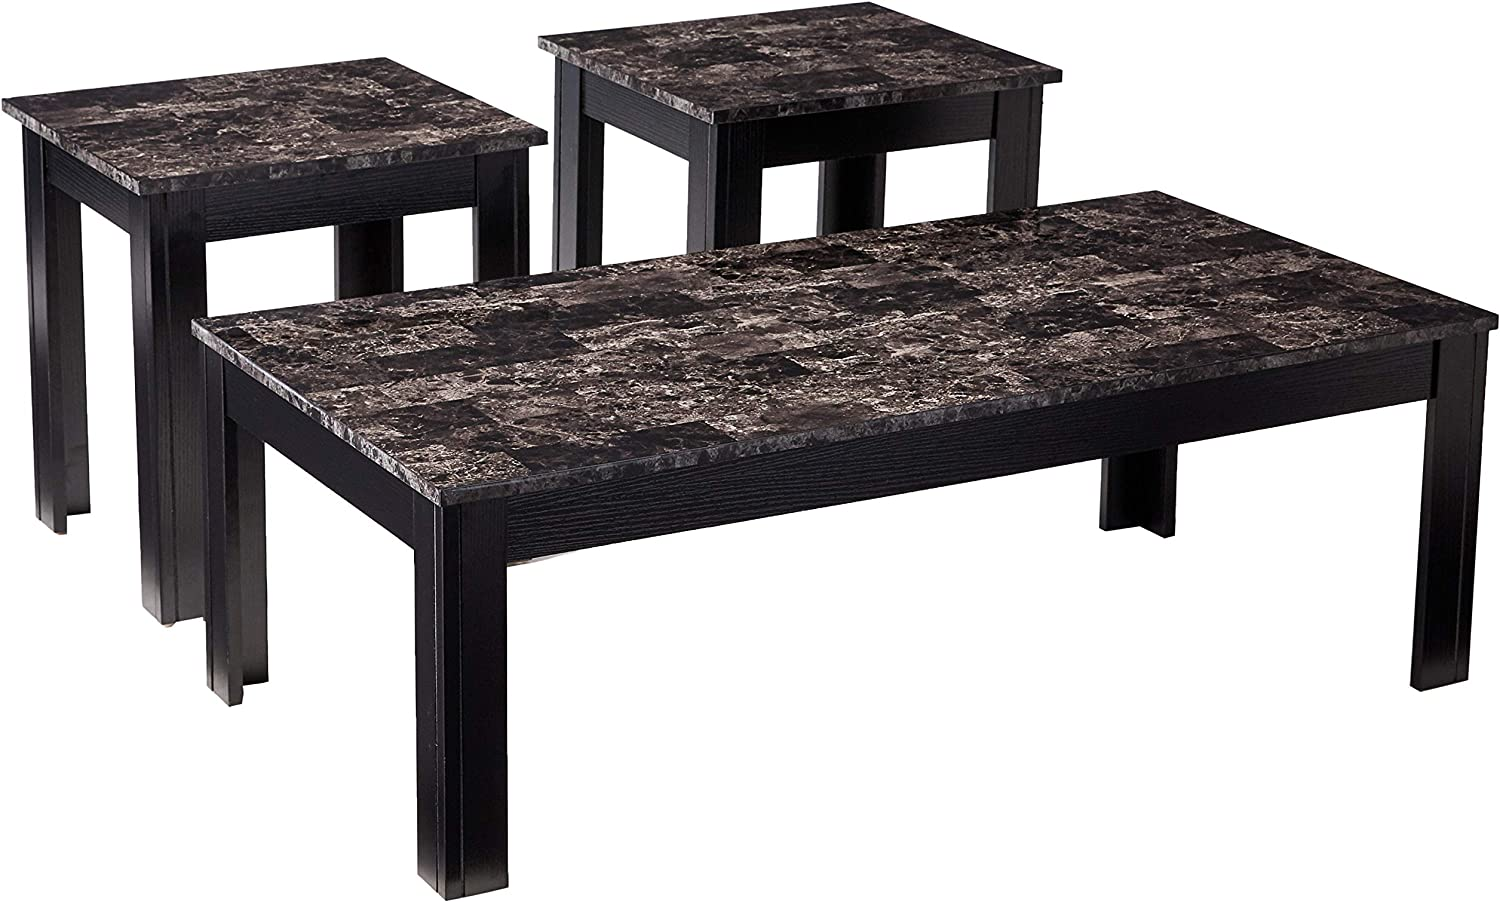 Coaster Home Furnishings 3-Piece Occasional Brand new Marbl New item Set Table with